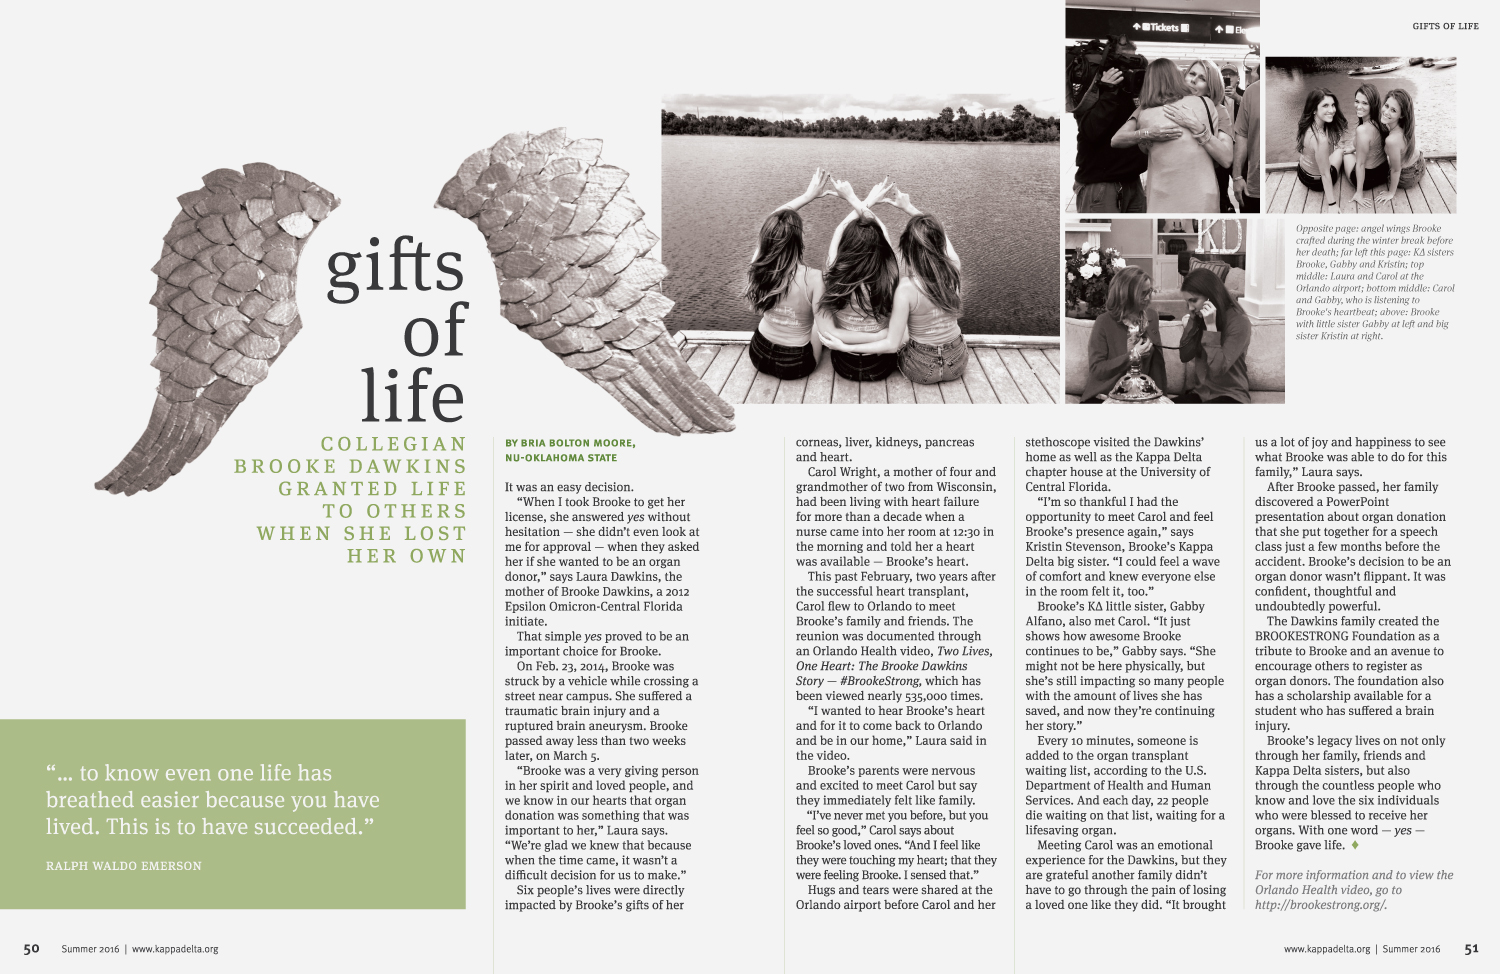 summer-2016-angelos-kappa-delta-sorority-magazine-brooke-dawkins-gifts-of-life-article